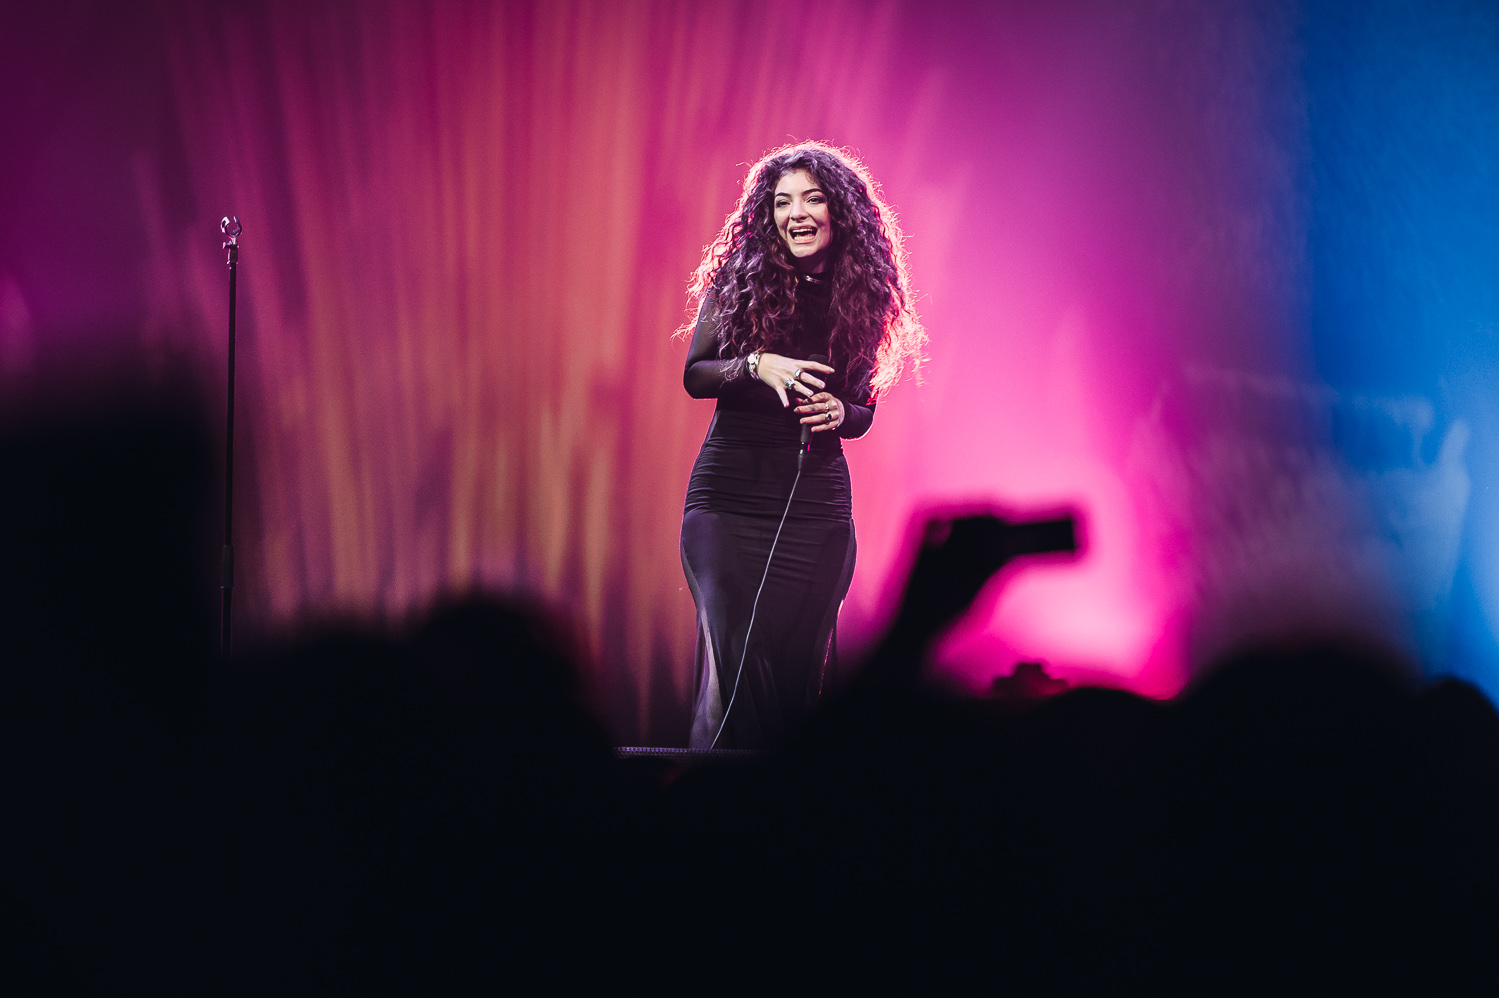 Lorde iHeart Radio_012_photo_©2013 Steve Dykes.jpg